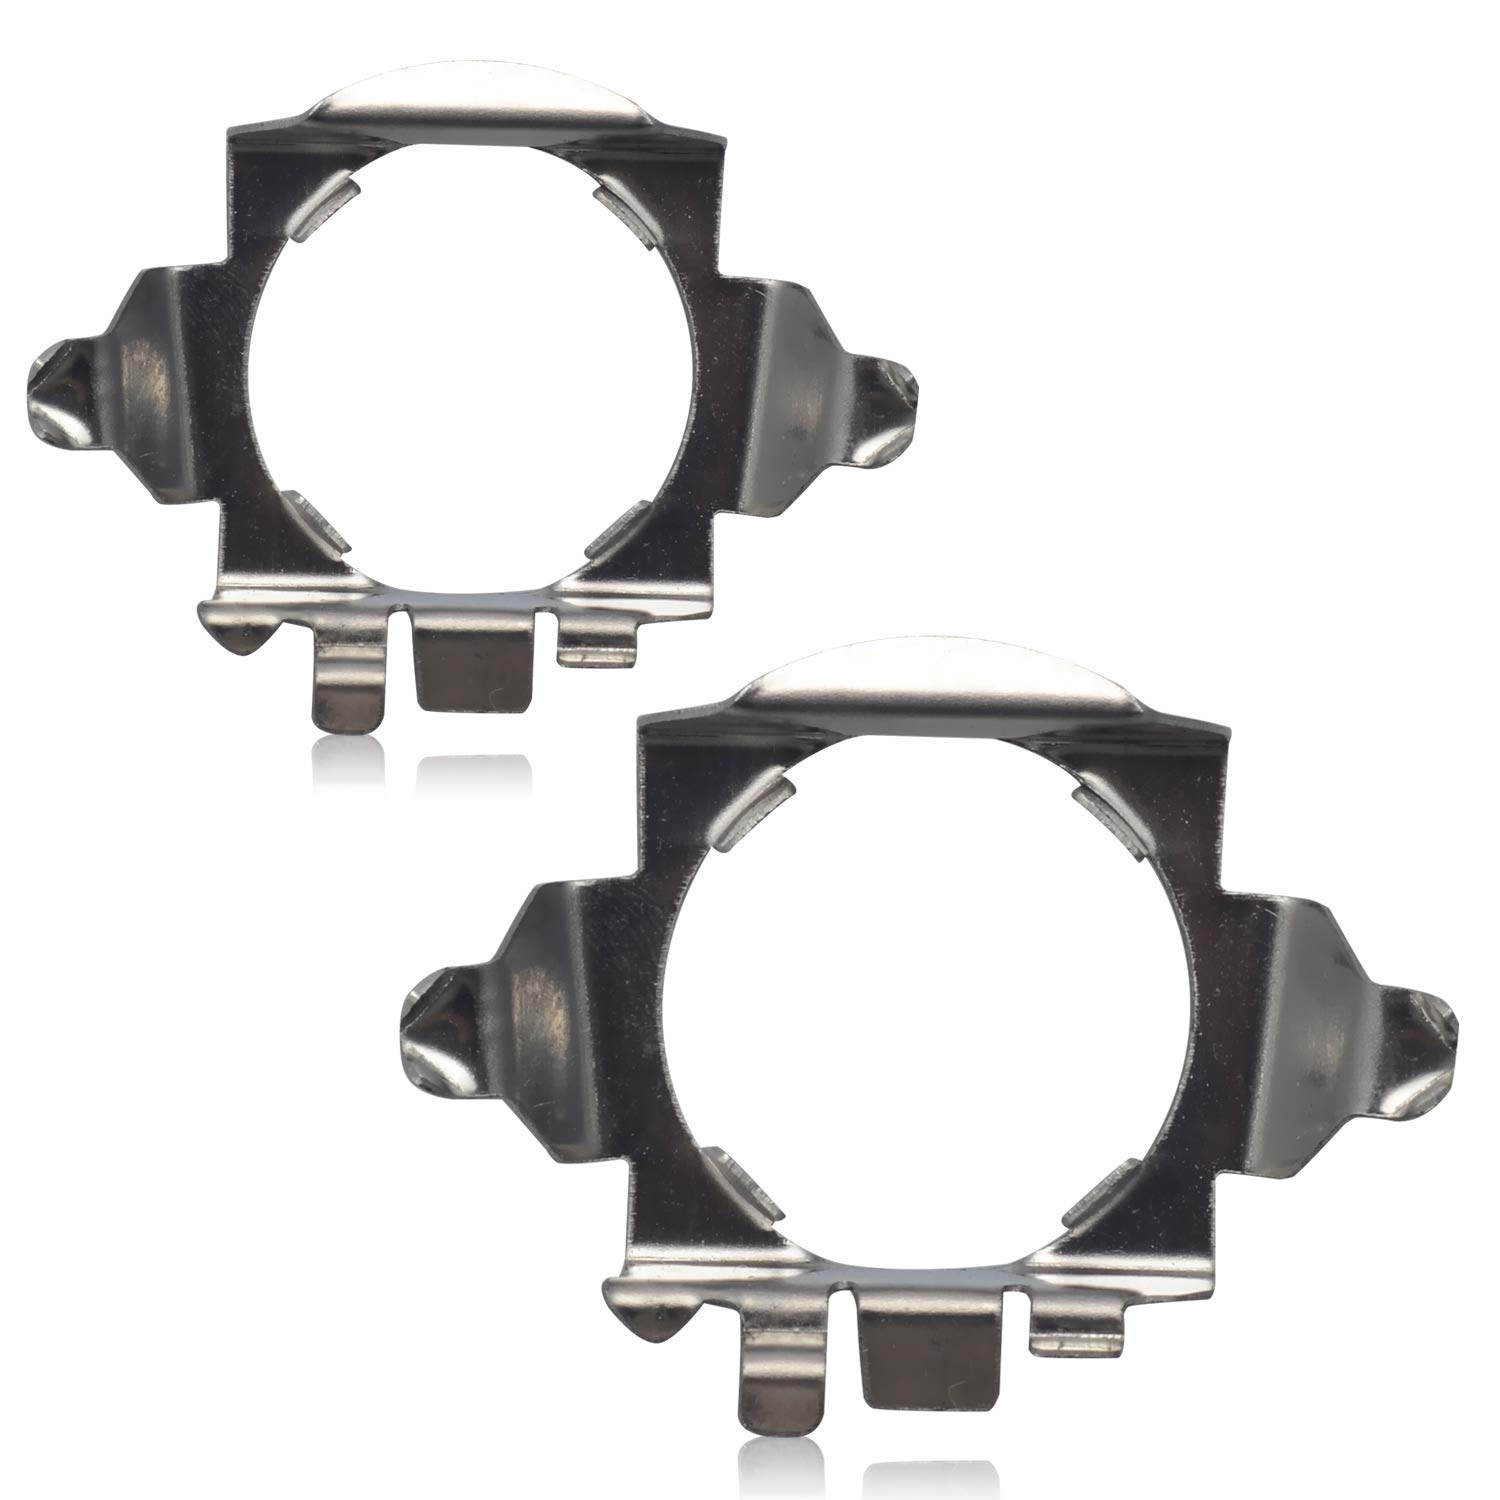 2 Pieces Win Power H7 LED Bulb Base Clips Adapter Holder Support